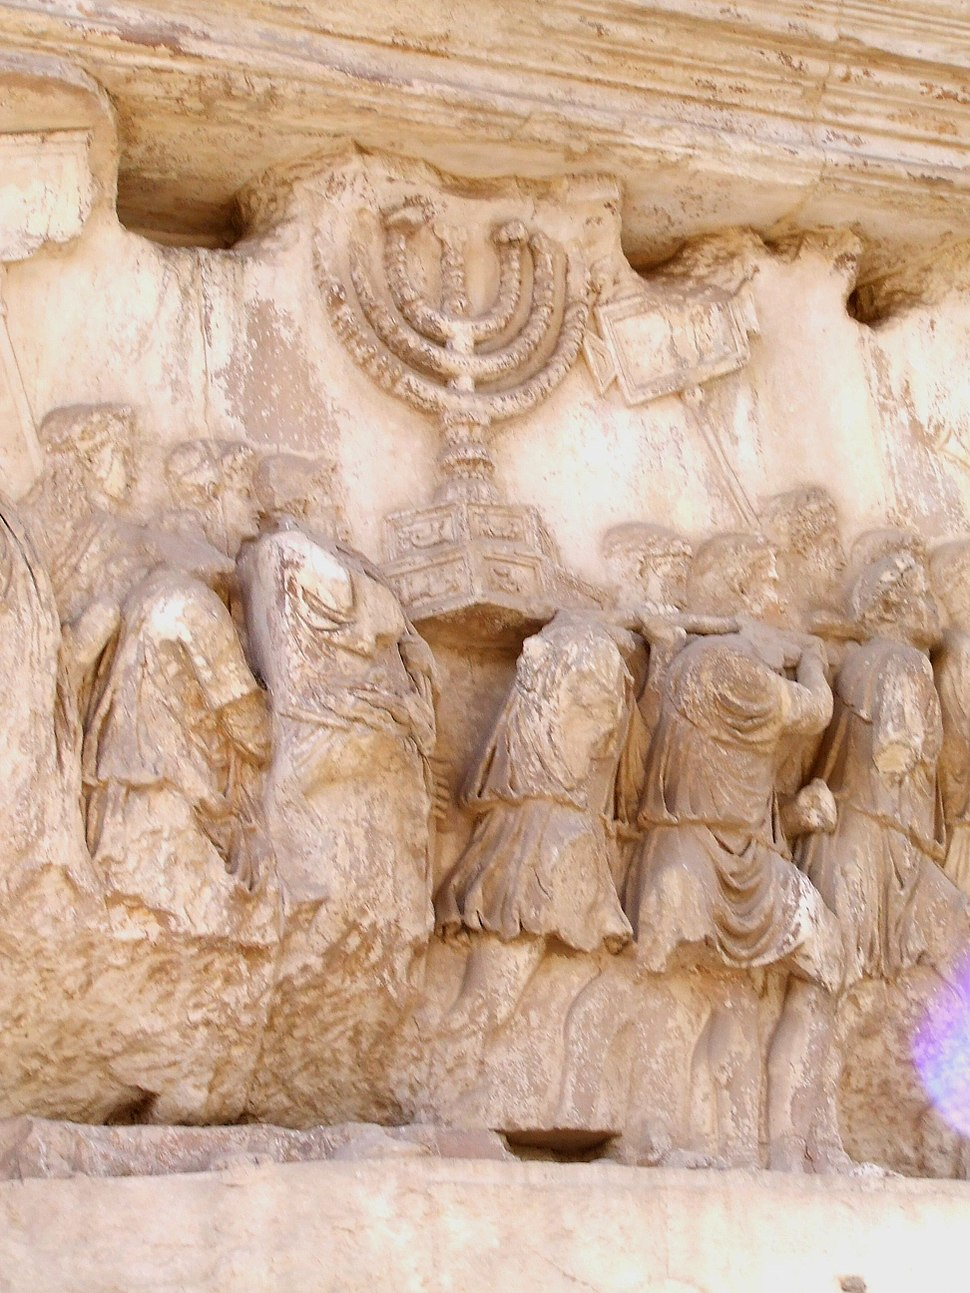 Carrying off the Menorah from the Temple in Jerusalem depicted on a frieze on the Arch of Titus in the Forum Romanum